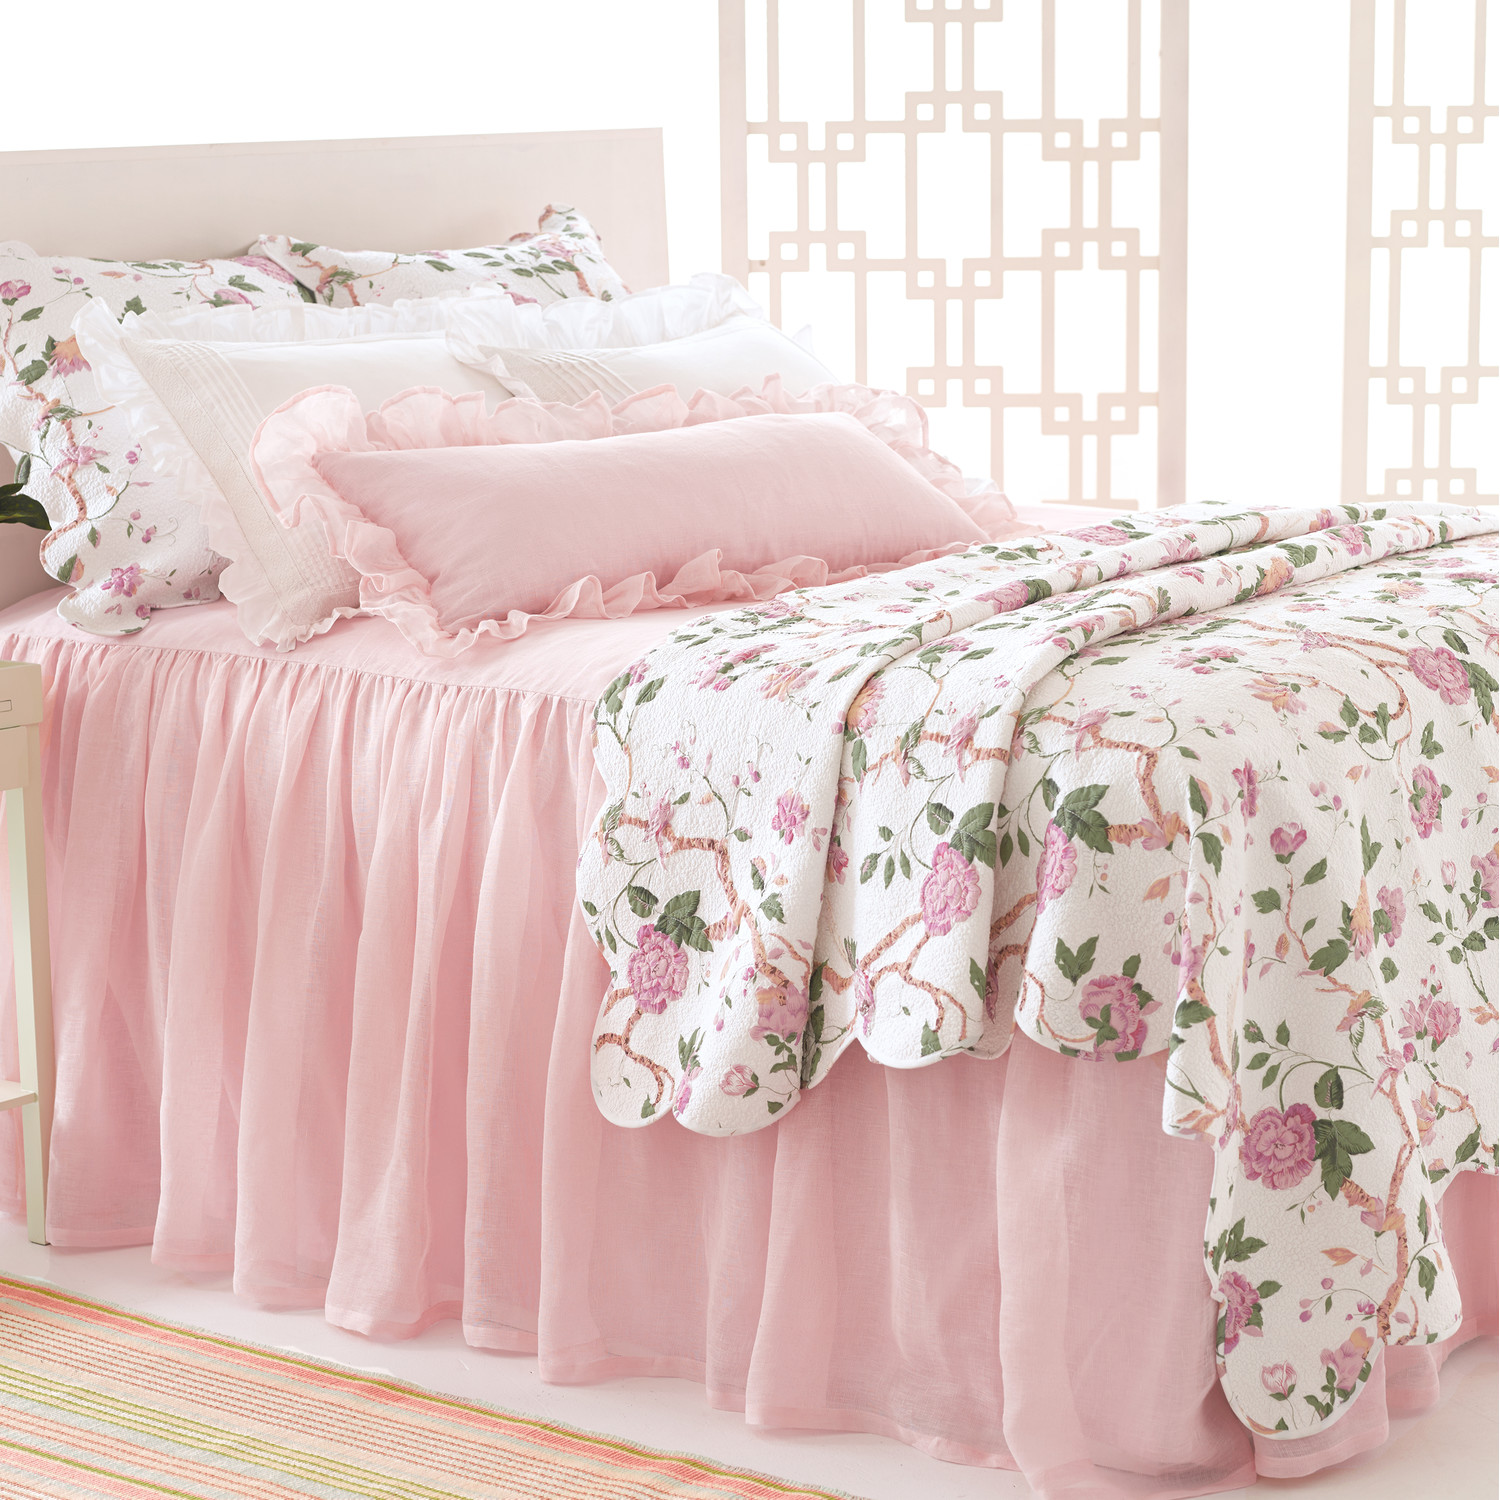 lovely pine cone hill bedding in pink white floral pattern for bed ideas